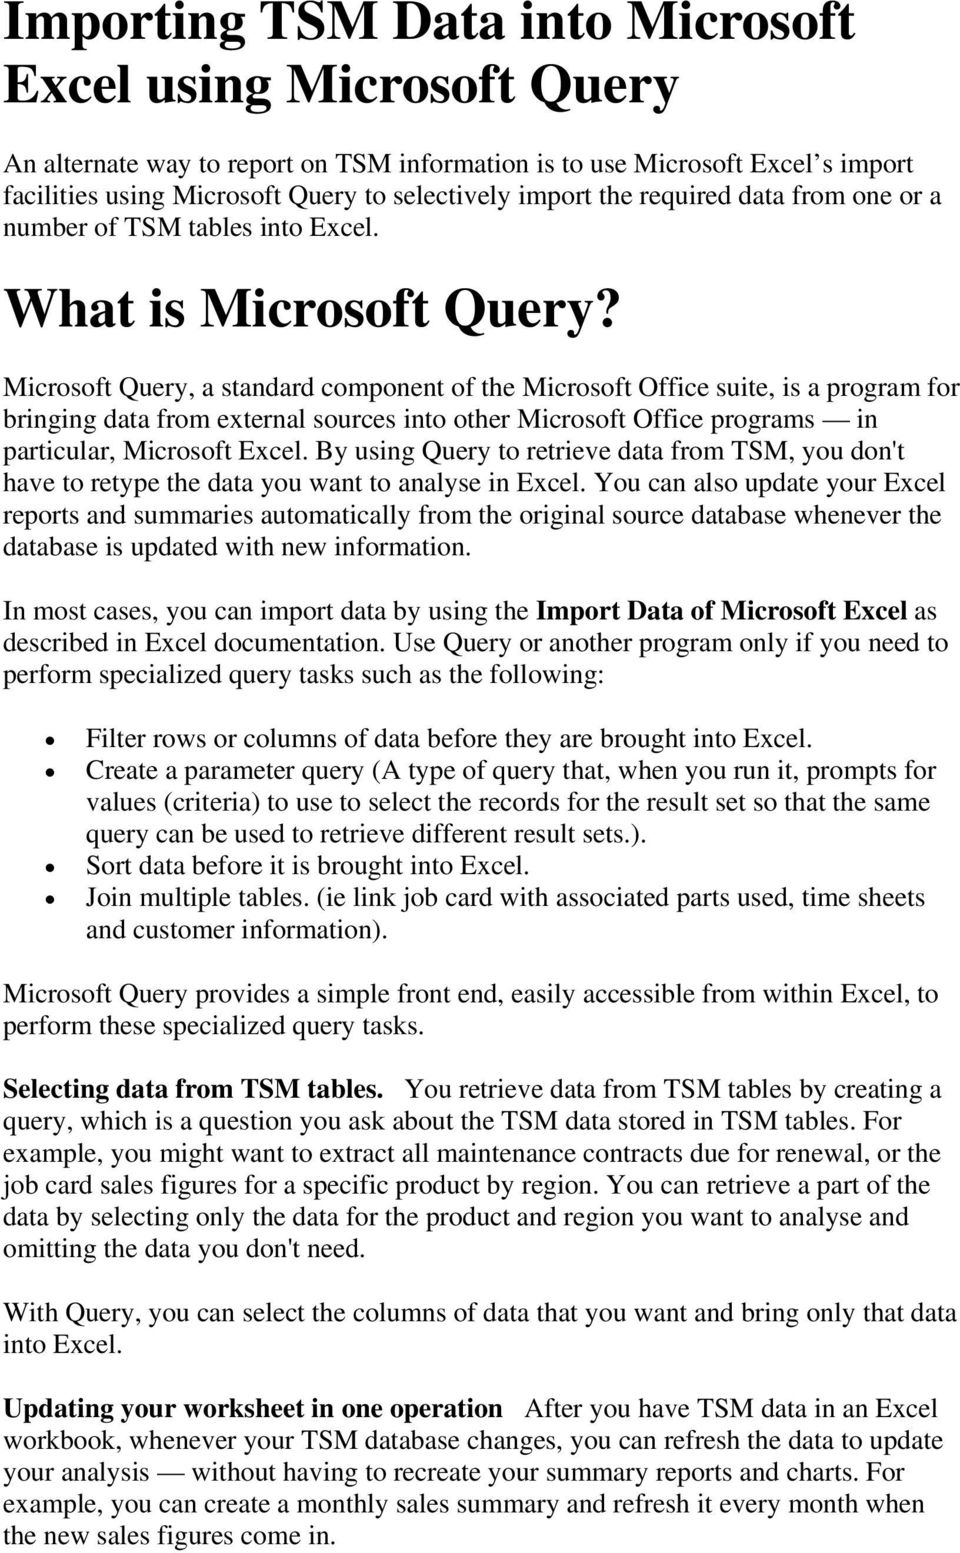 Microsoft Query, a standard component of the Microsoft Office suite, is a program for bringing data from external sources into other Microsoft Office programs in particular, Microsoft Excel.